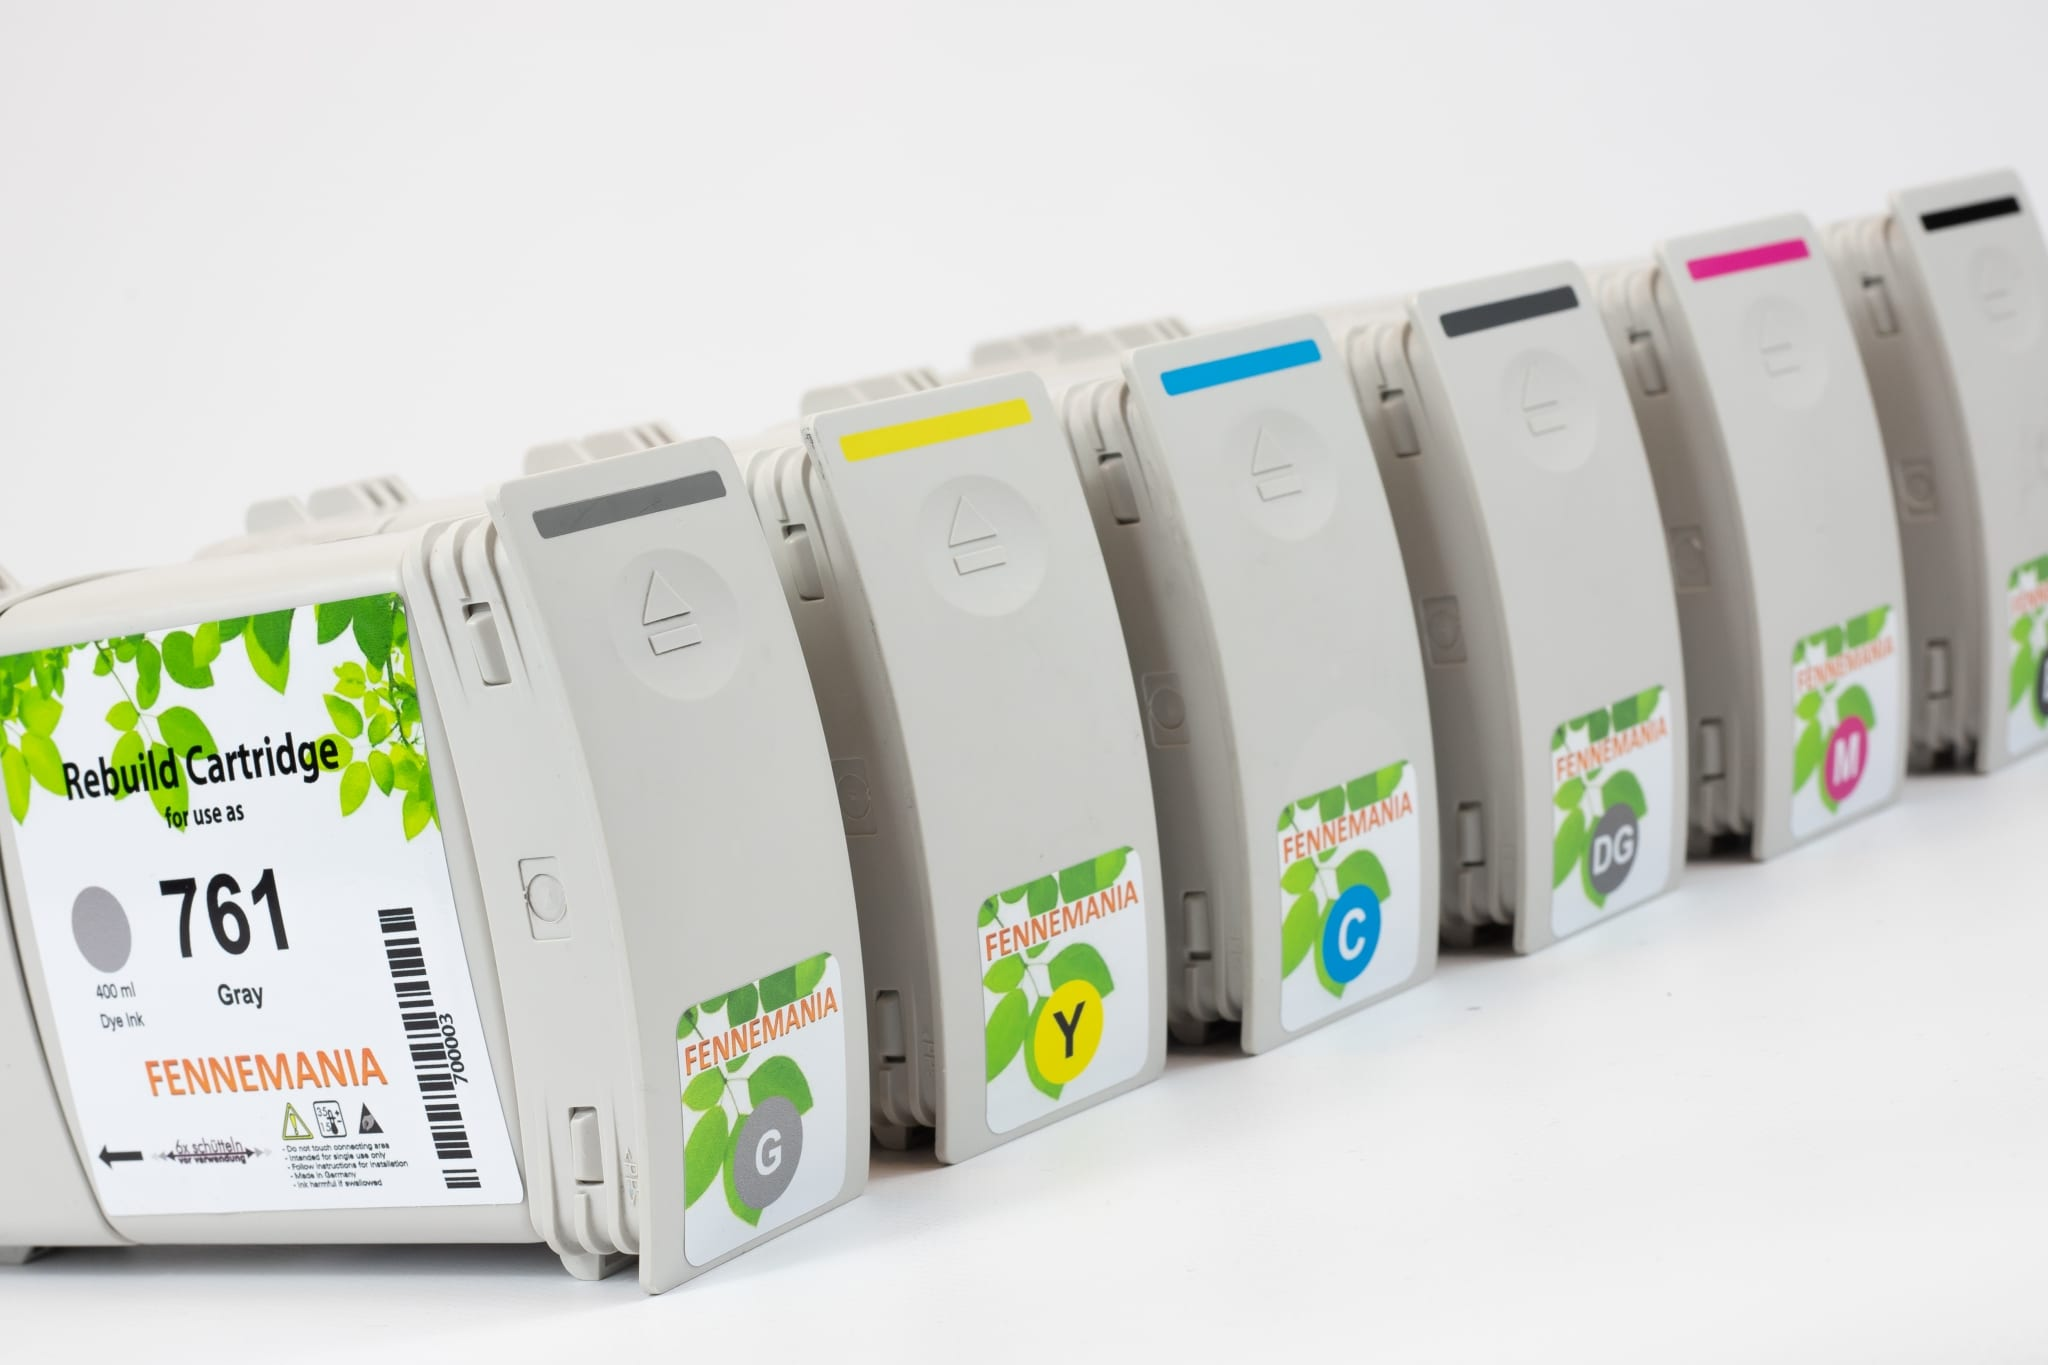 Set HP761 cartridges